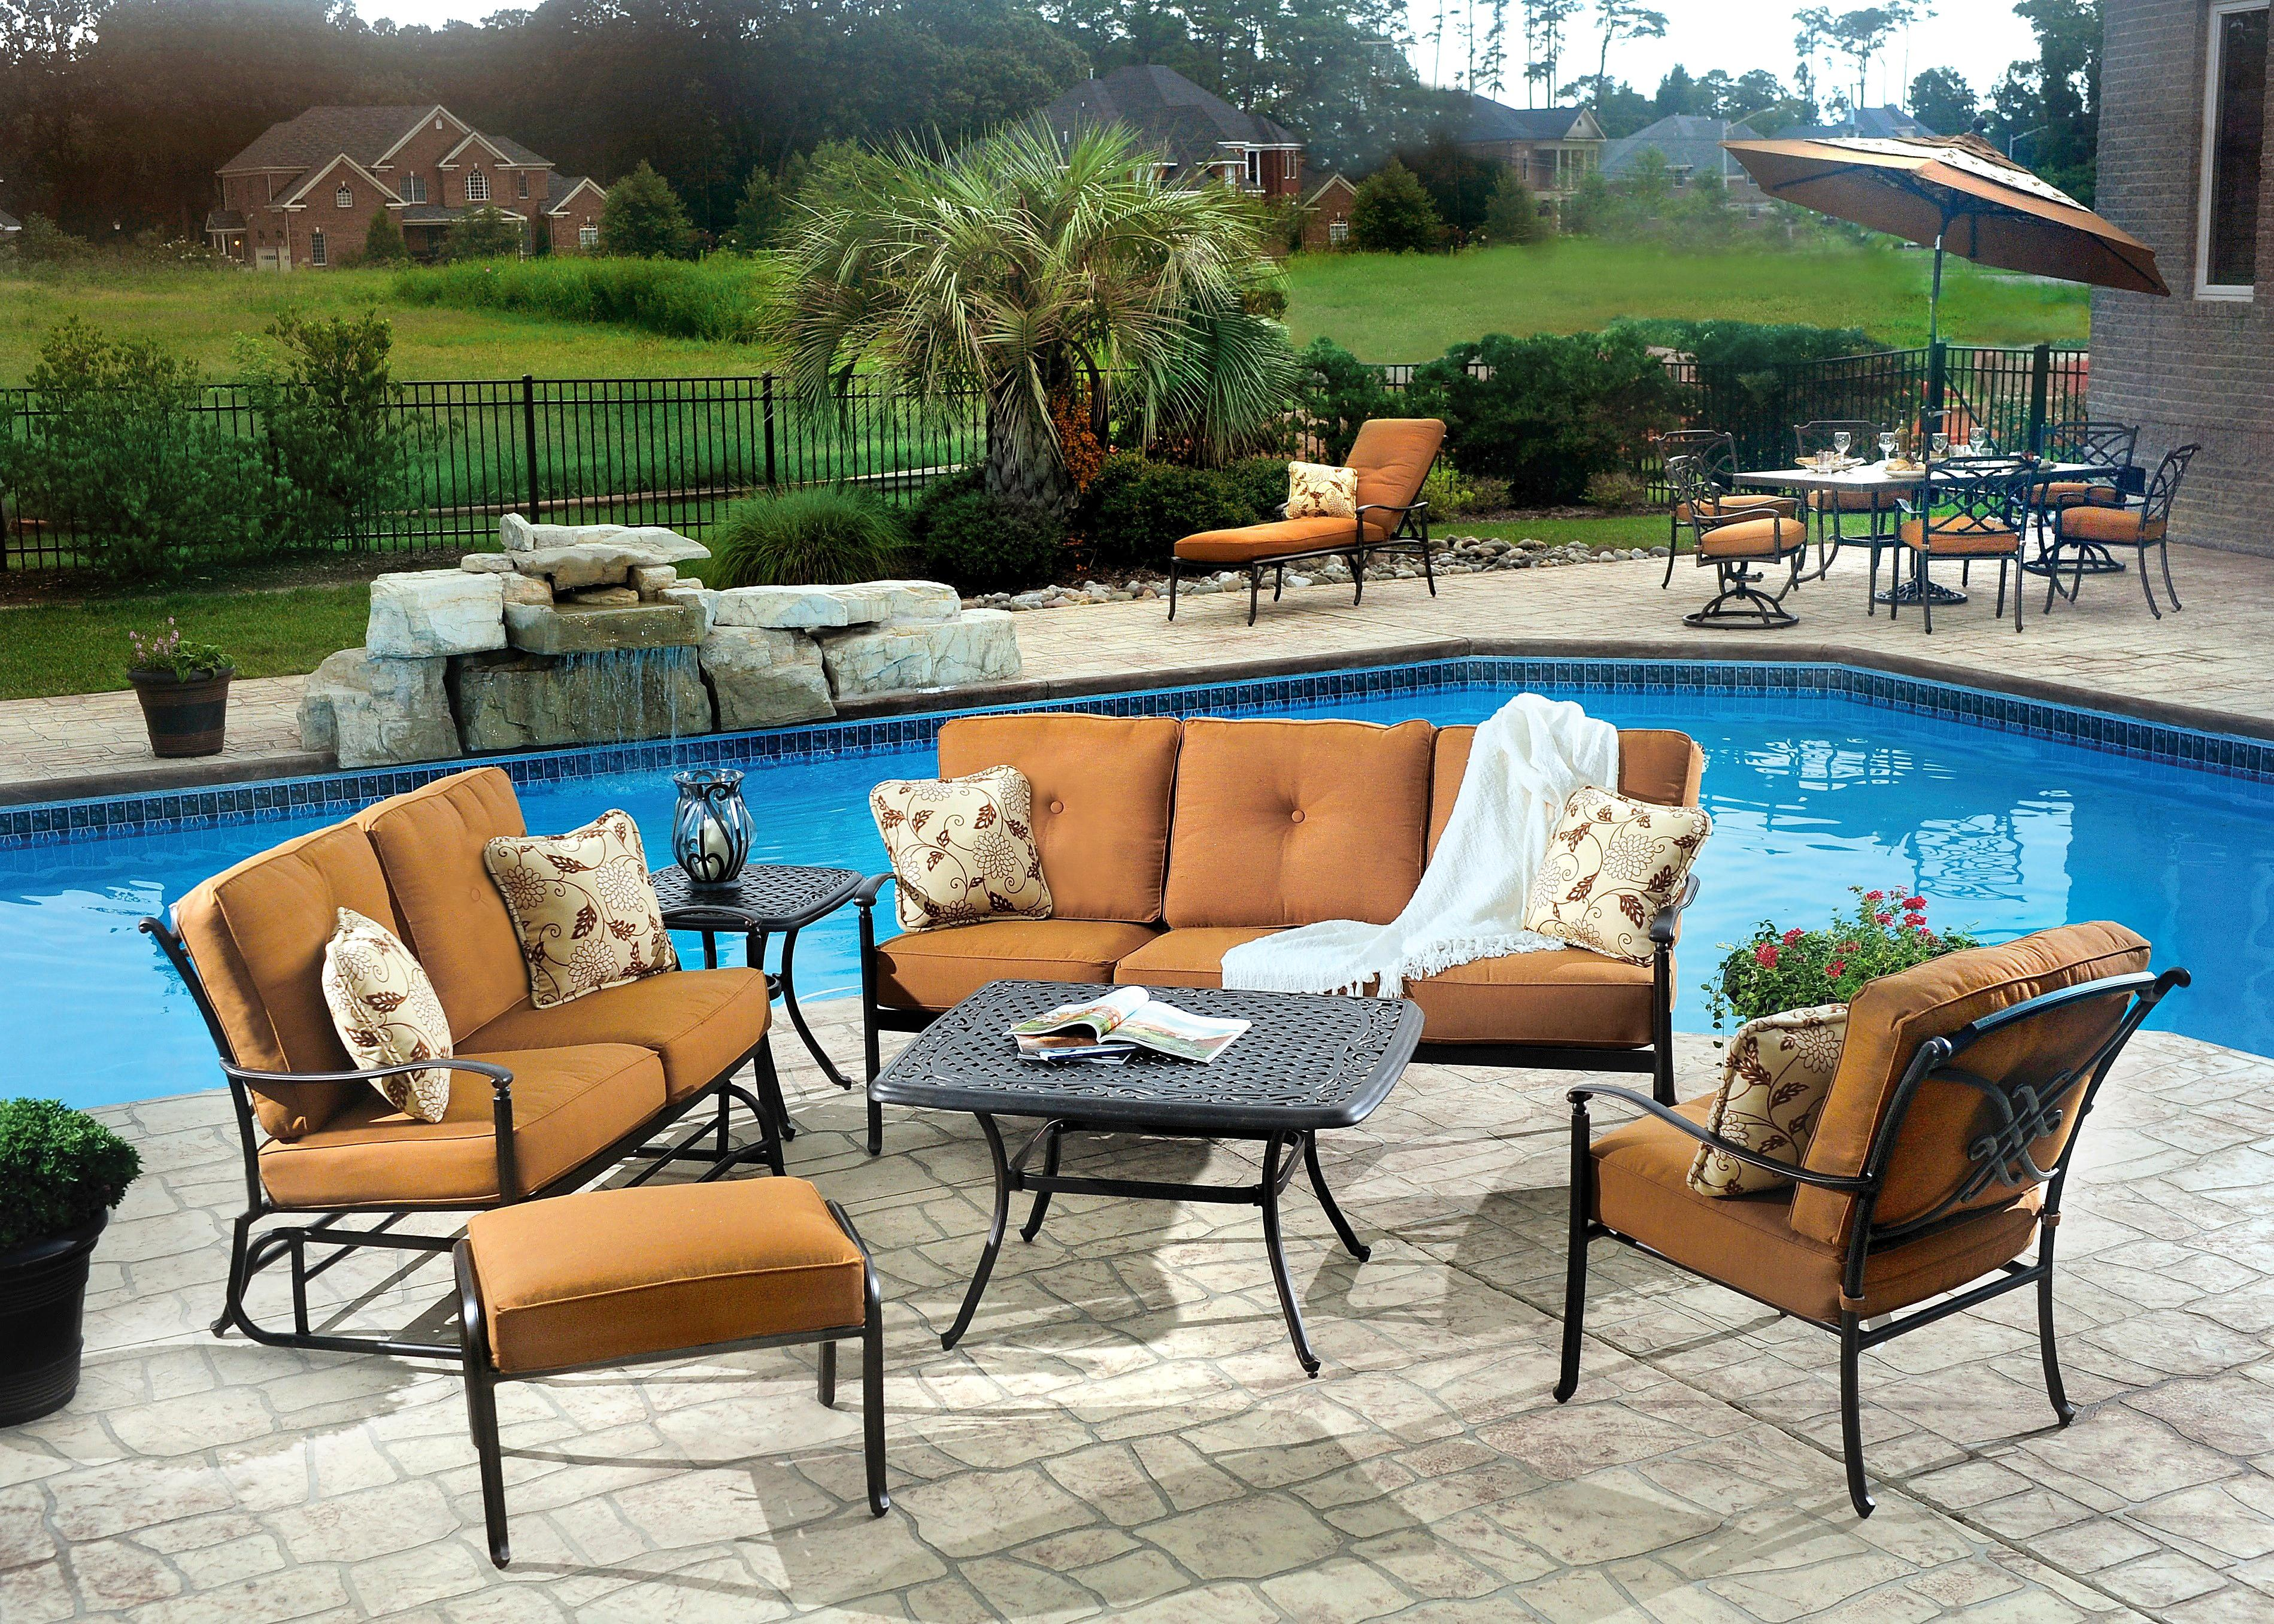 Agio Willowbrook Patio Furniture.Agio Willowbrook Outdoor Conversation Chat Set Fmg Local Home